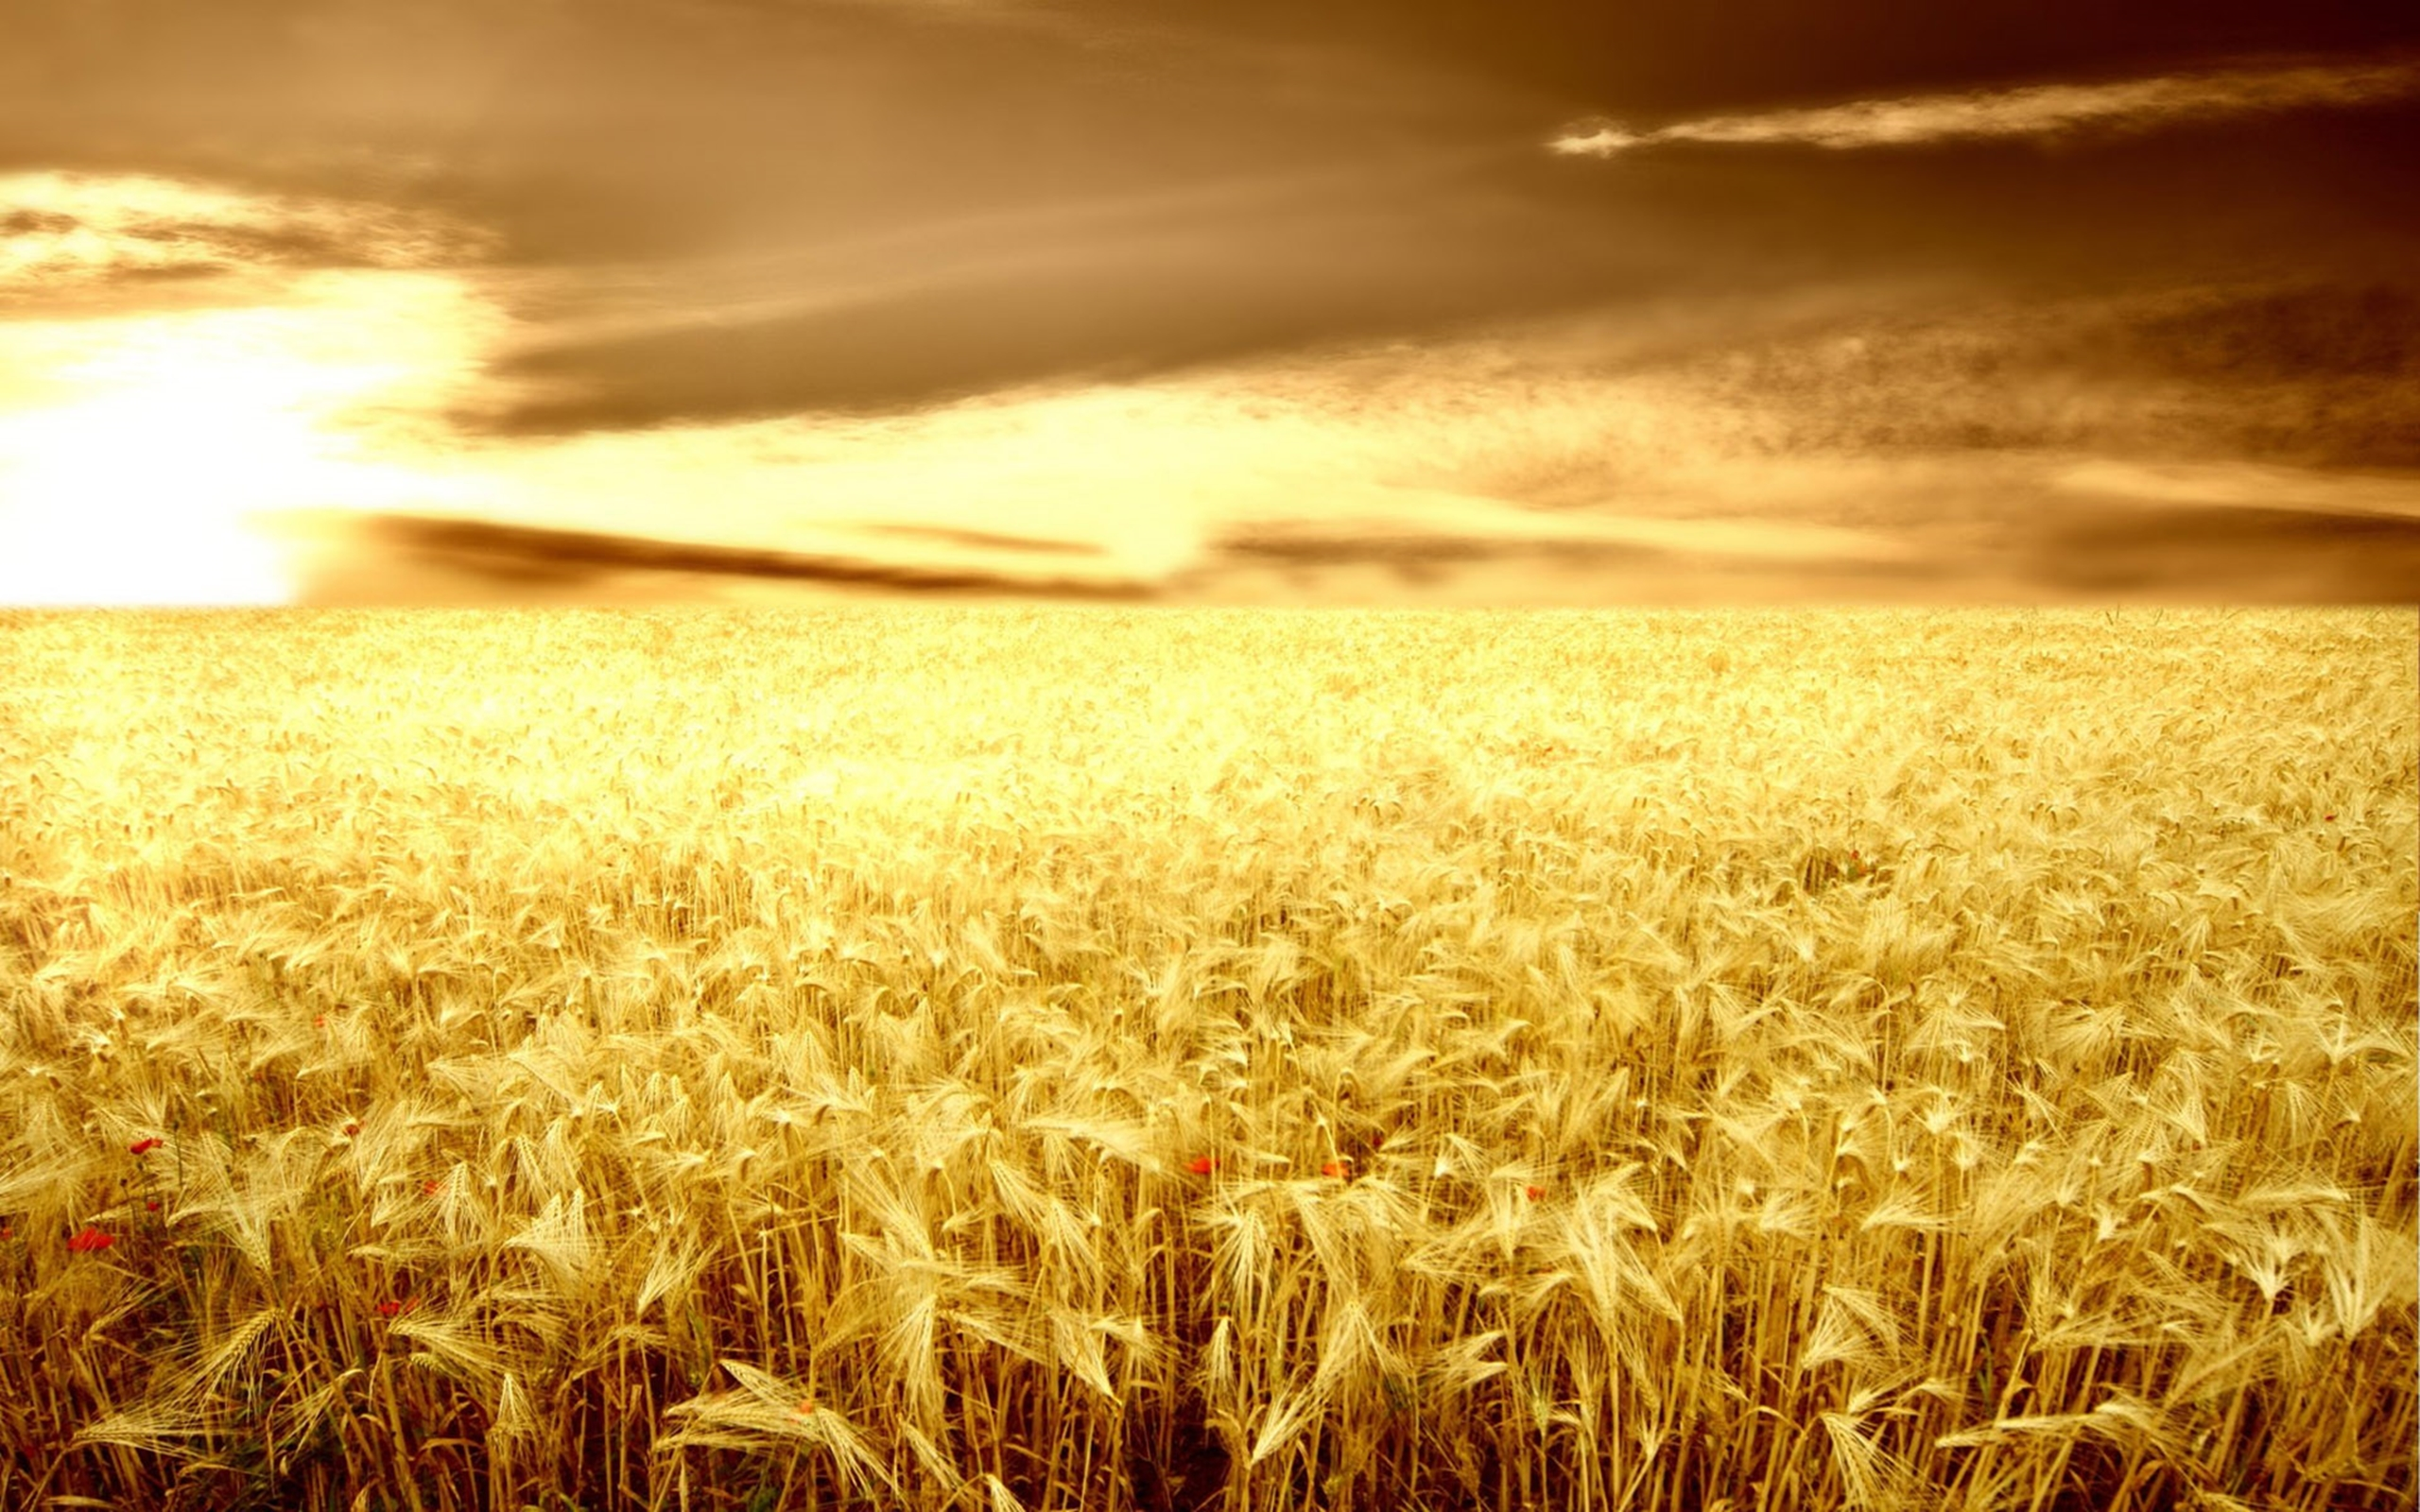 Inspirational Wallpapers With Quotes High Resolution Sunset Over The Wheat Field Wallpaper Nature Wallpaper